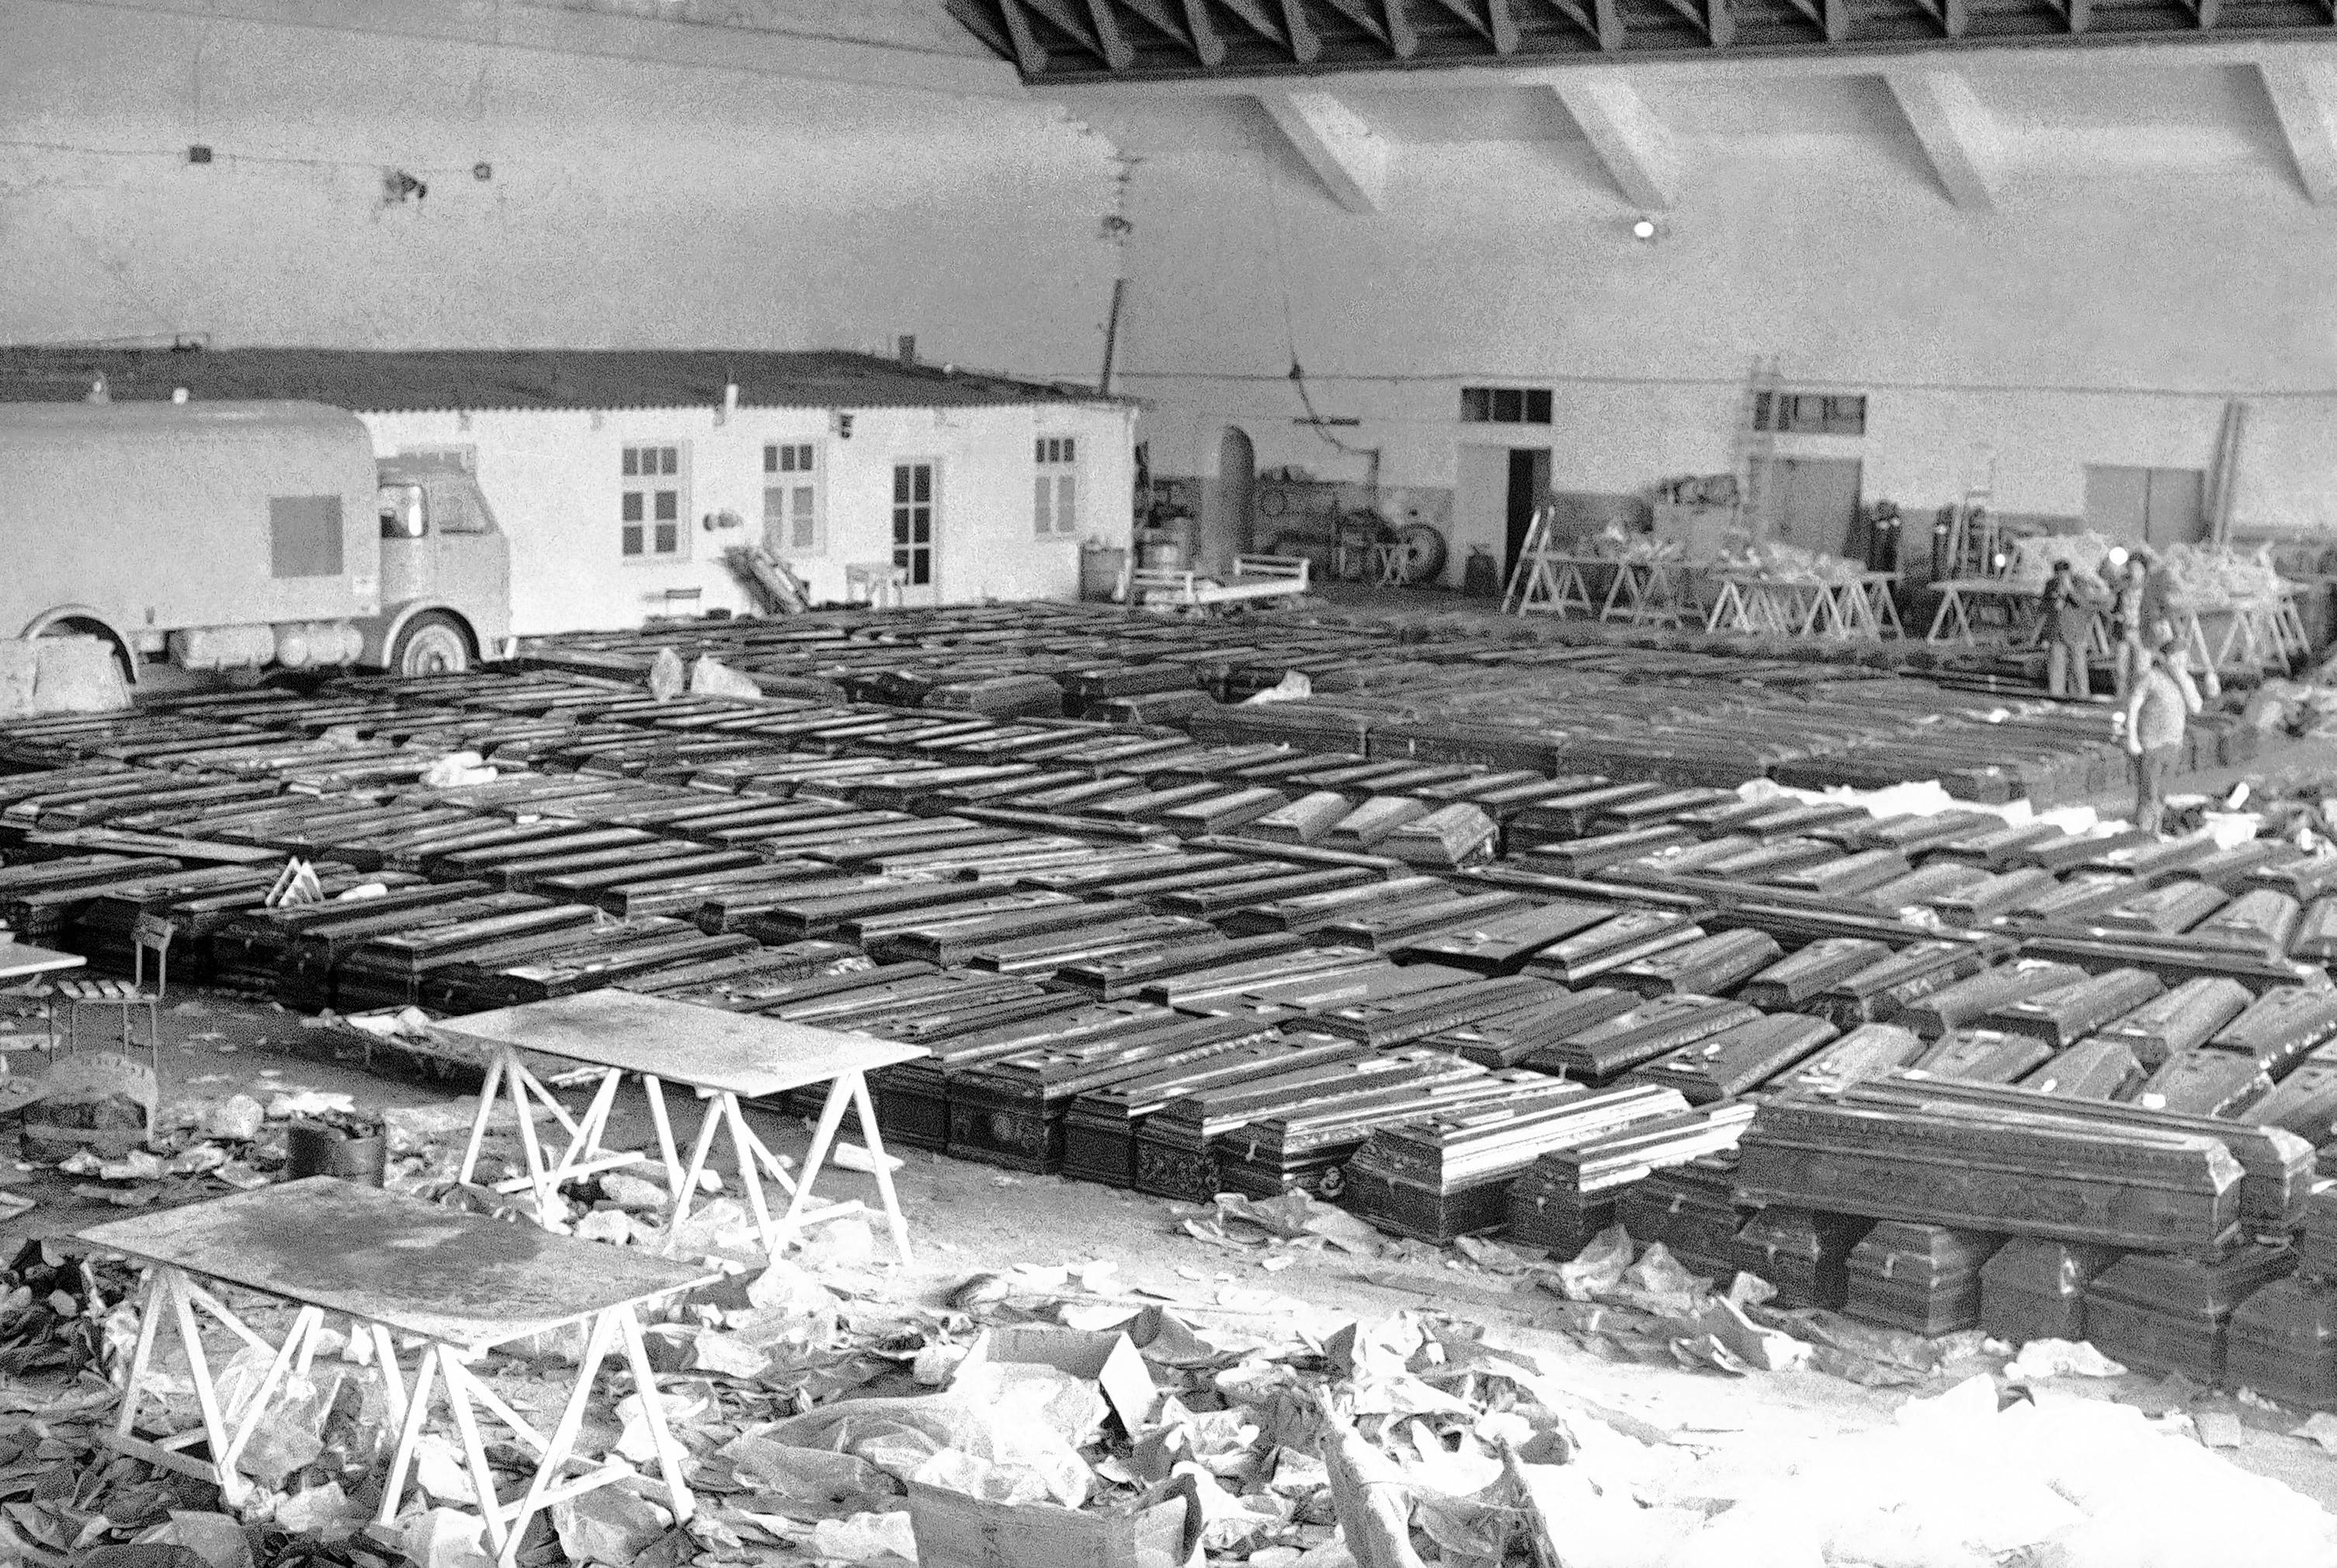 Coffins containing many of the 583 victims of the March, 27, 1977, collision of two jumbo jets lie in a hangar at Tenerife Airport in Santa Cruz de Tenerife, Canary Islands. It remains the world's worst aviation disaster.